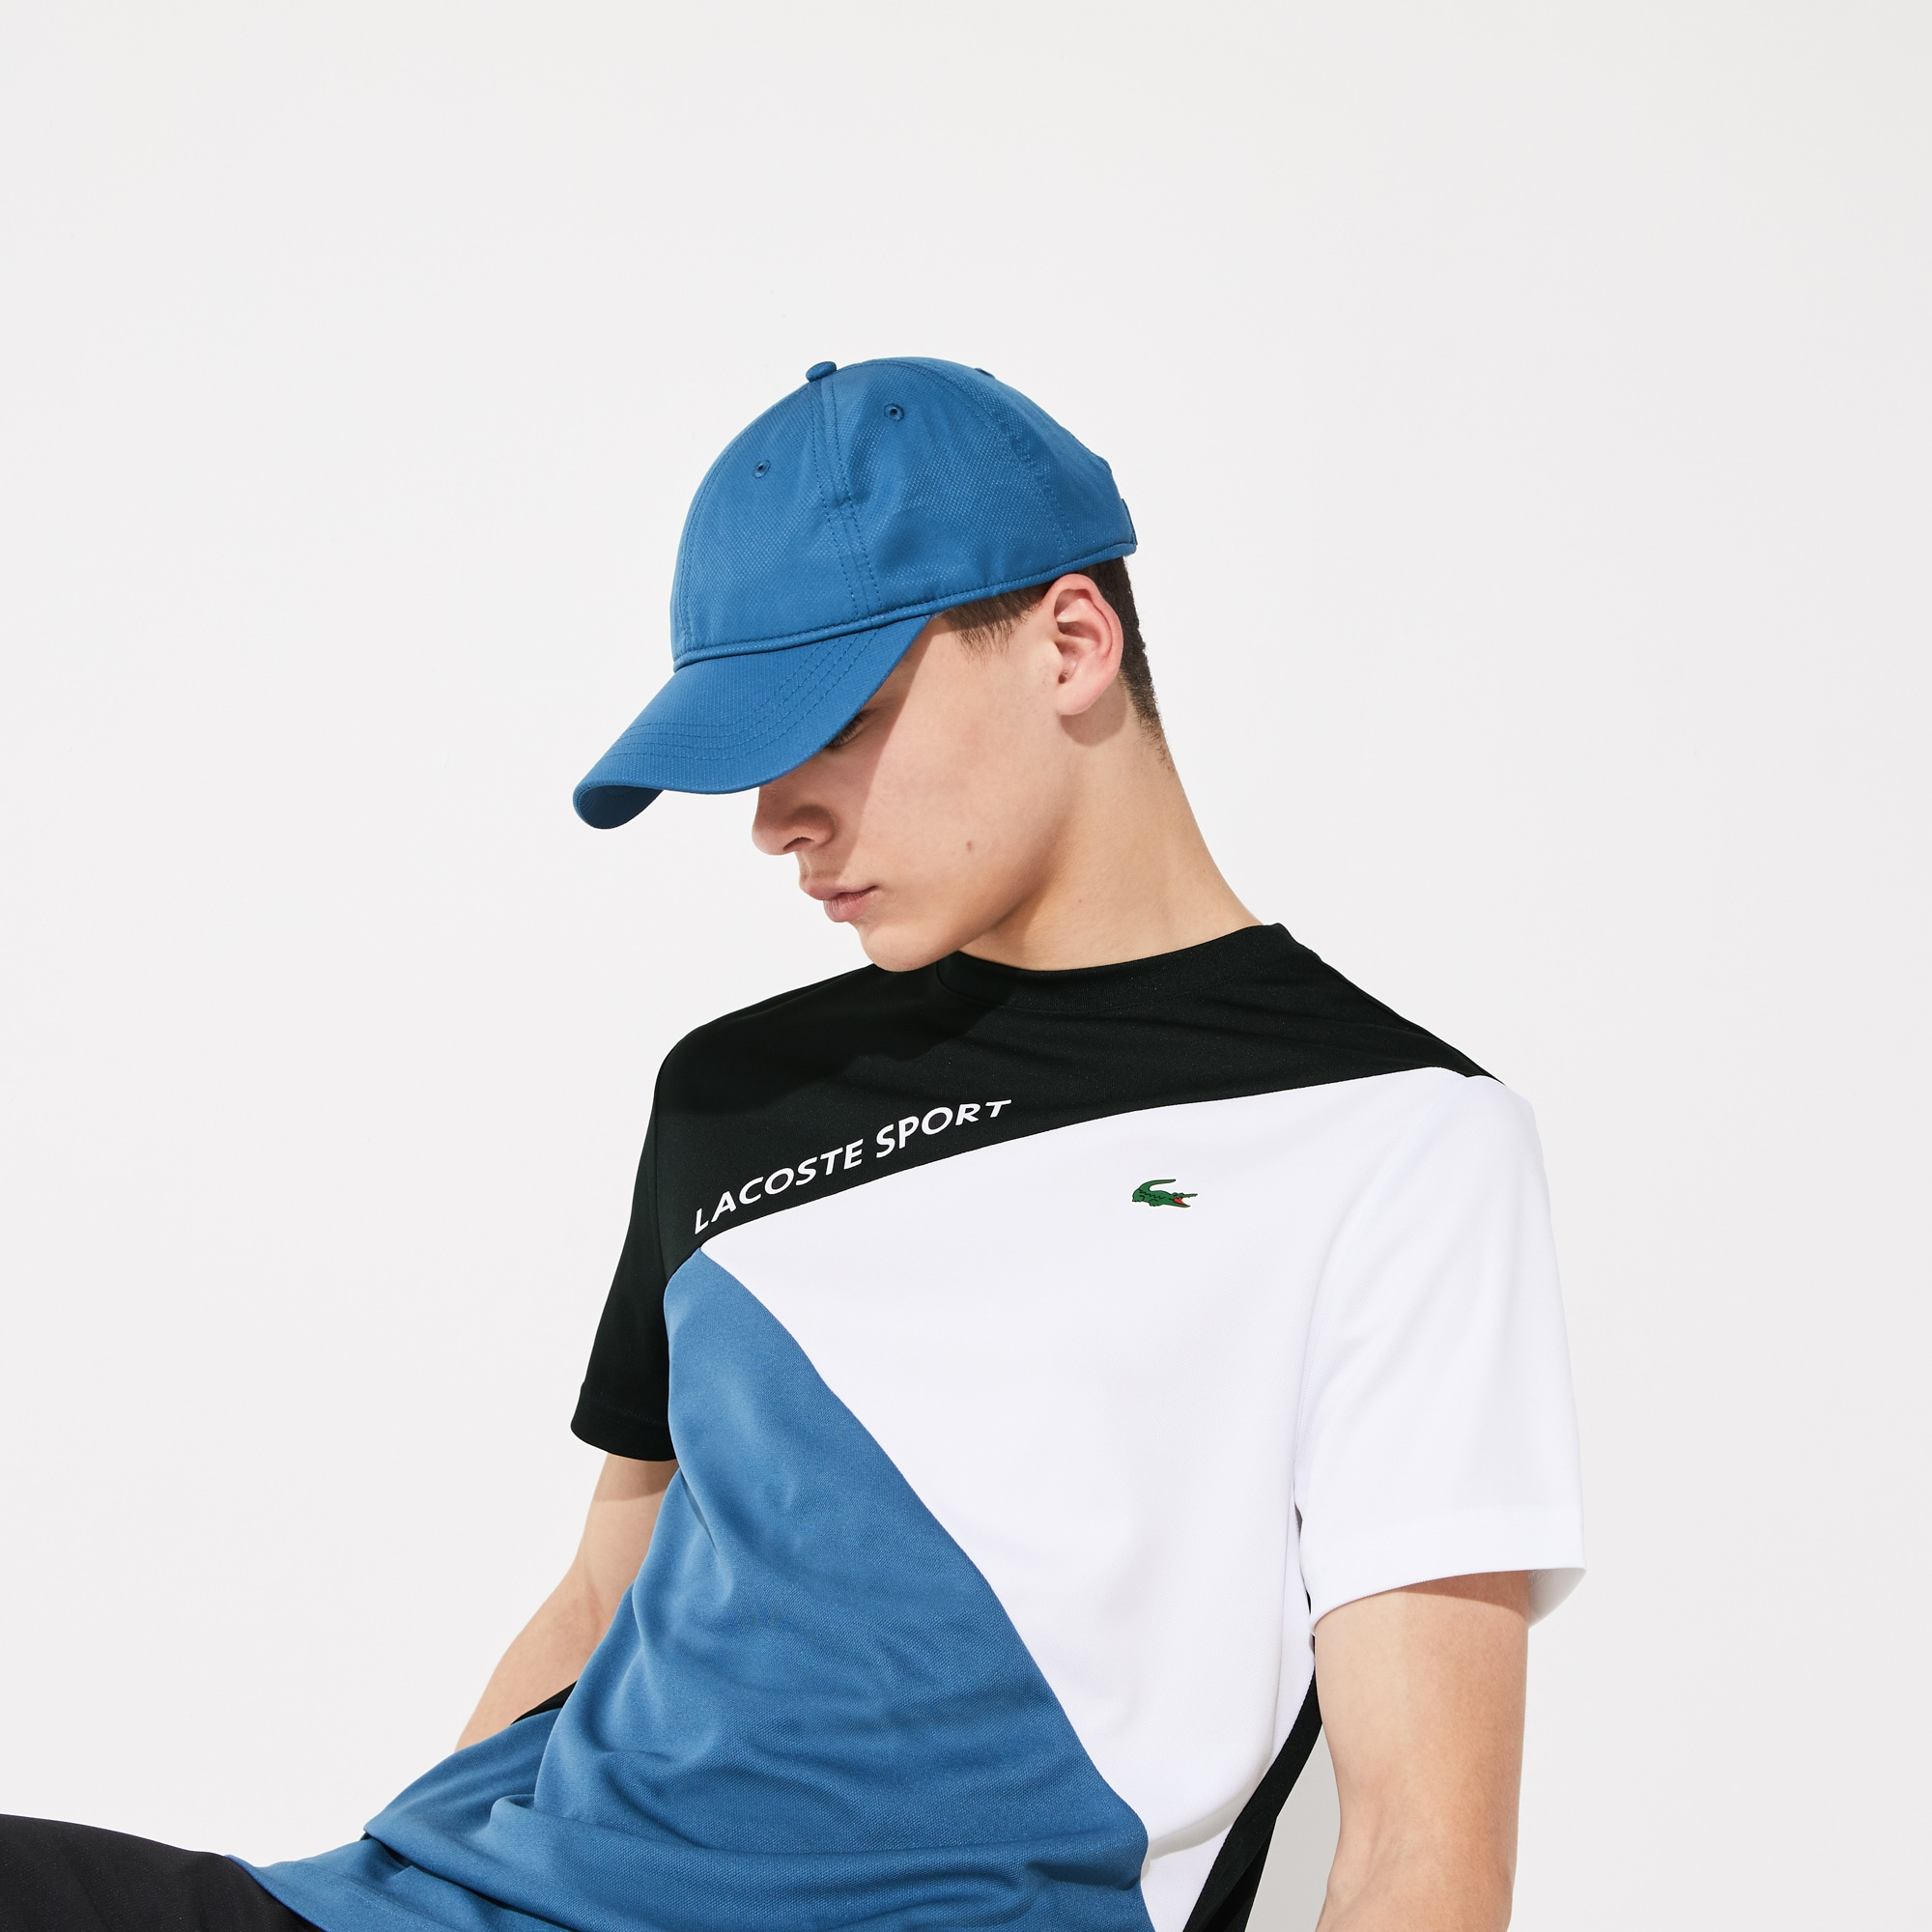 295a6a84e8 Nouvelle Collection Printemps-Été | LACOSTE